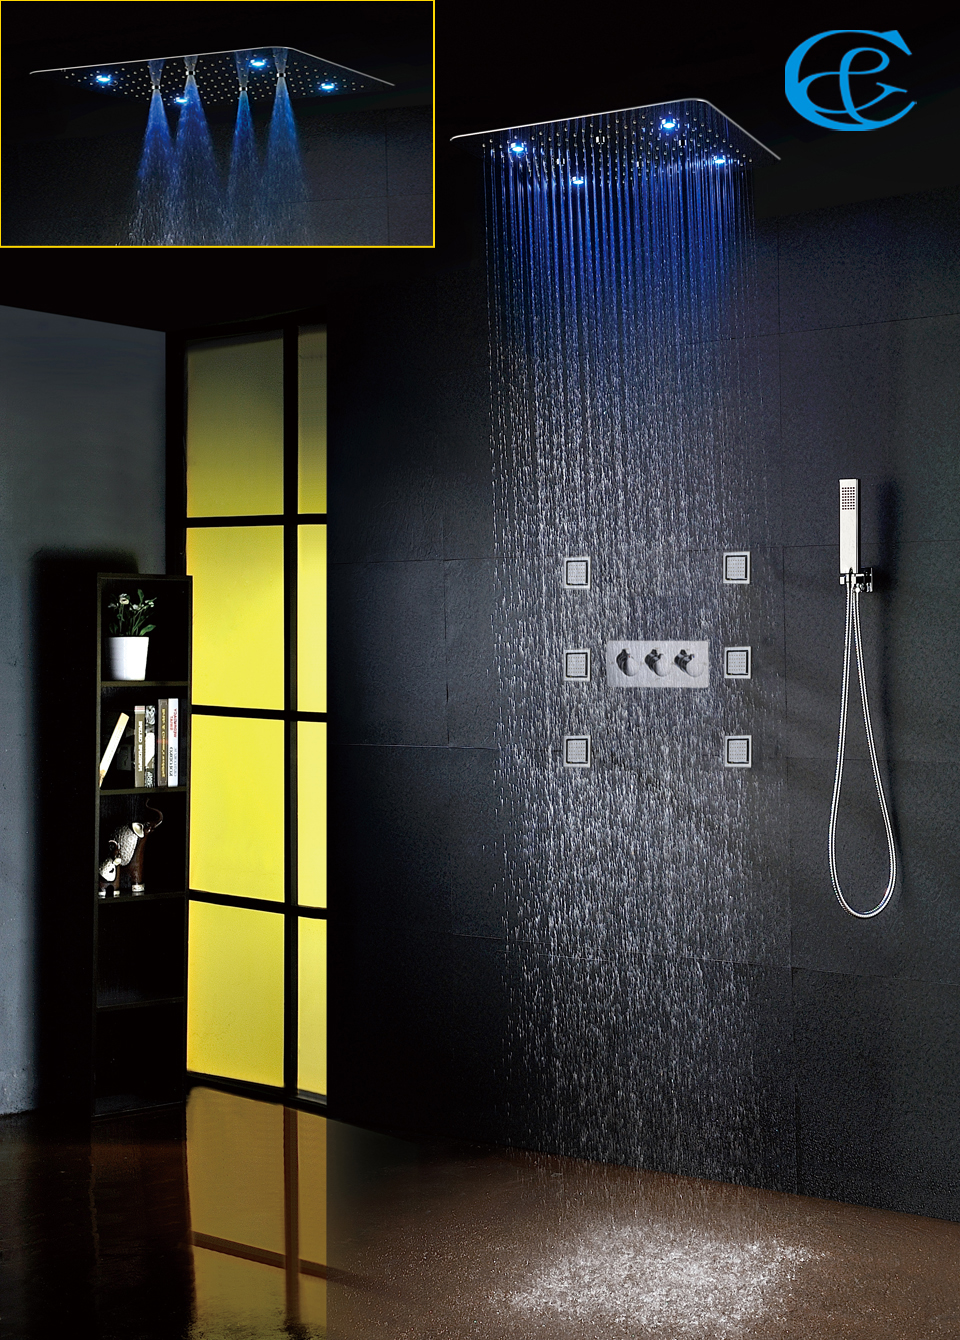 Bathroom Shower Faucet Set Accessories Faucet Panel Tap Hot And Cold Water Mixer LED Ceiling Shower Head Rain Bath & Shower gappo classic chrome bathroom shower faucet bath faucet mixer tap with hand shower head set wall mounted g3260